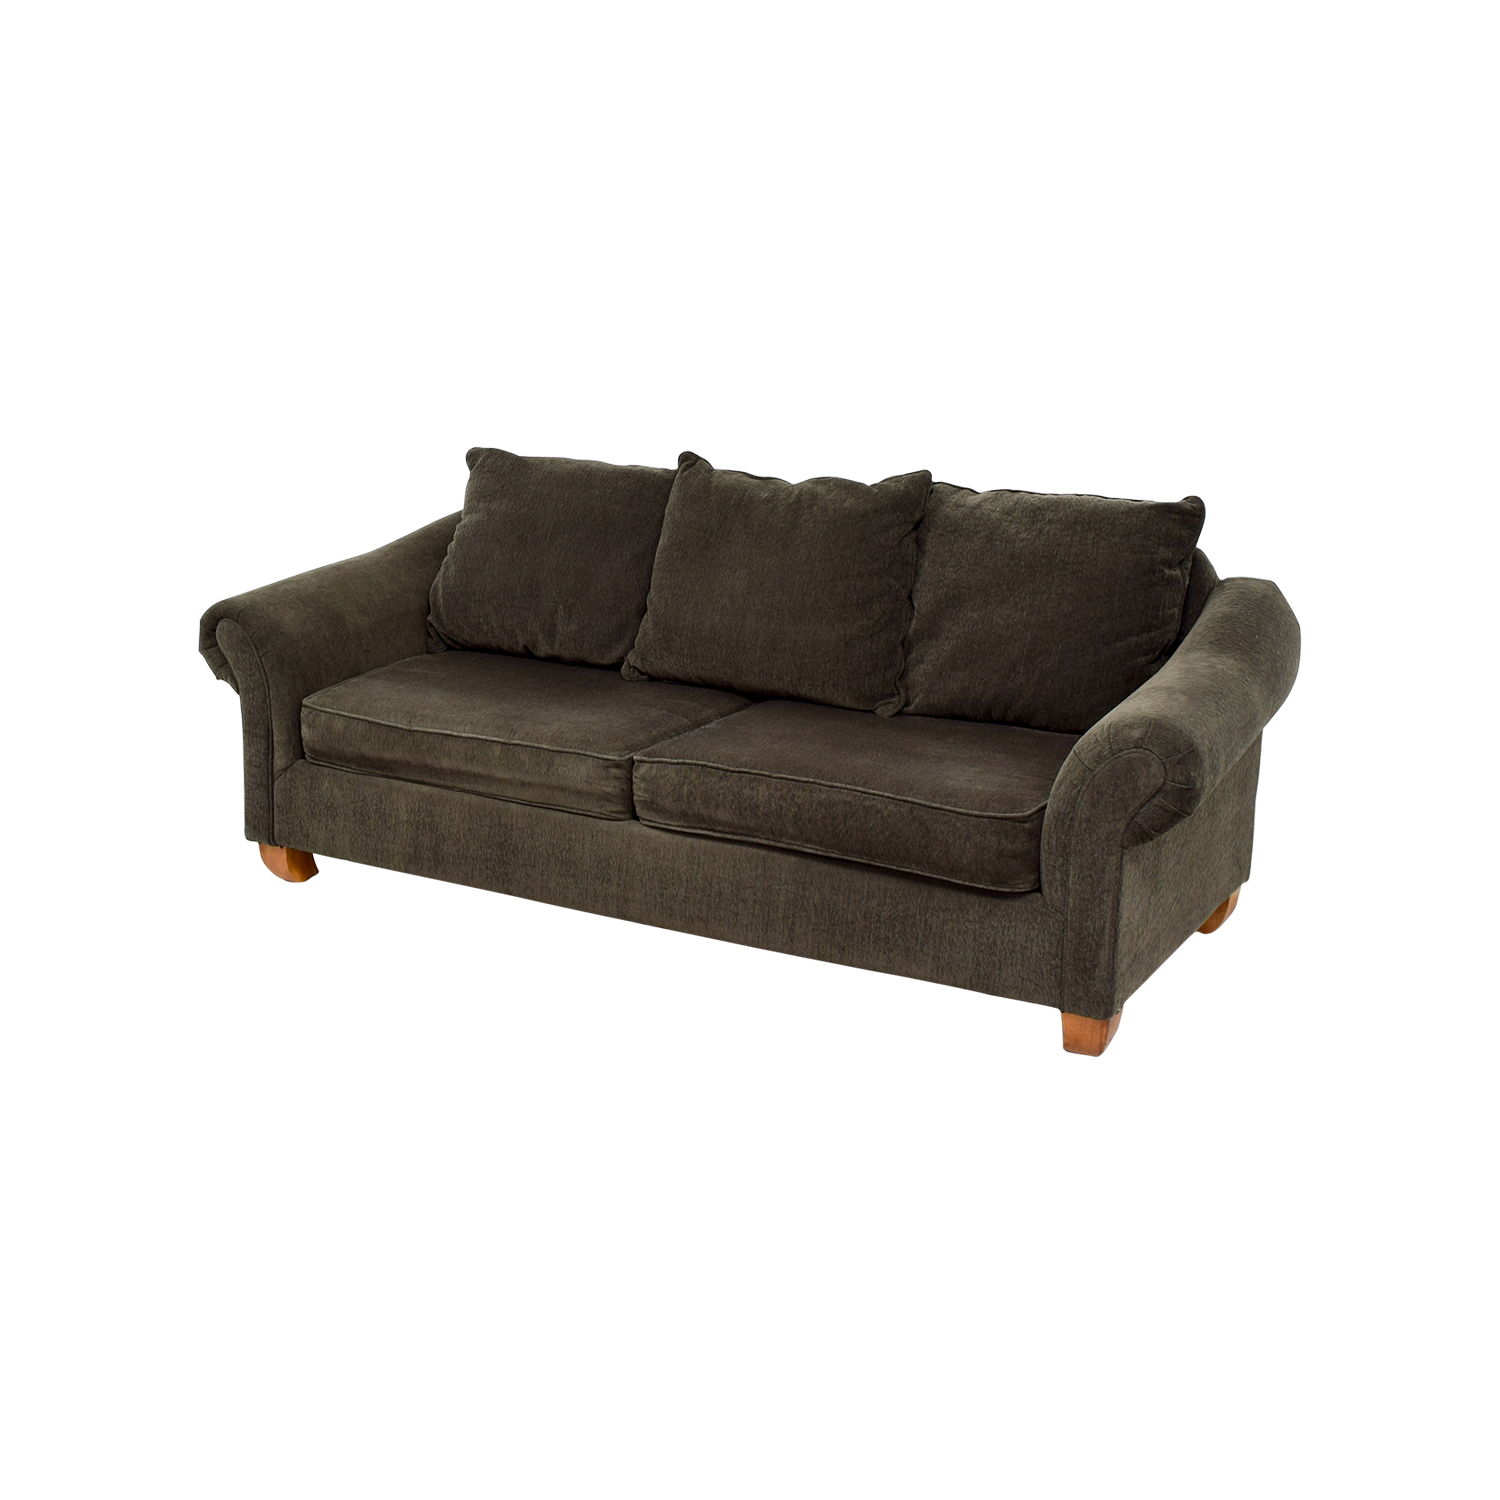 Cheap used furniture houston craigslist sectional sofa for G furniture houston